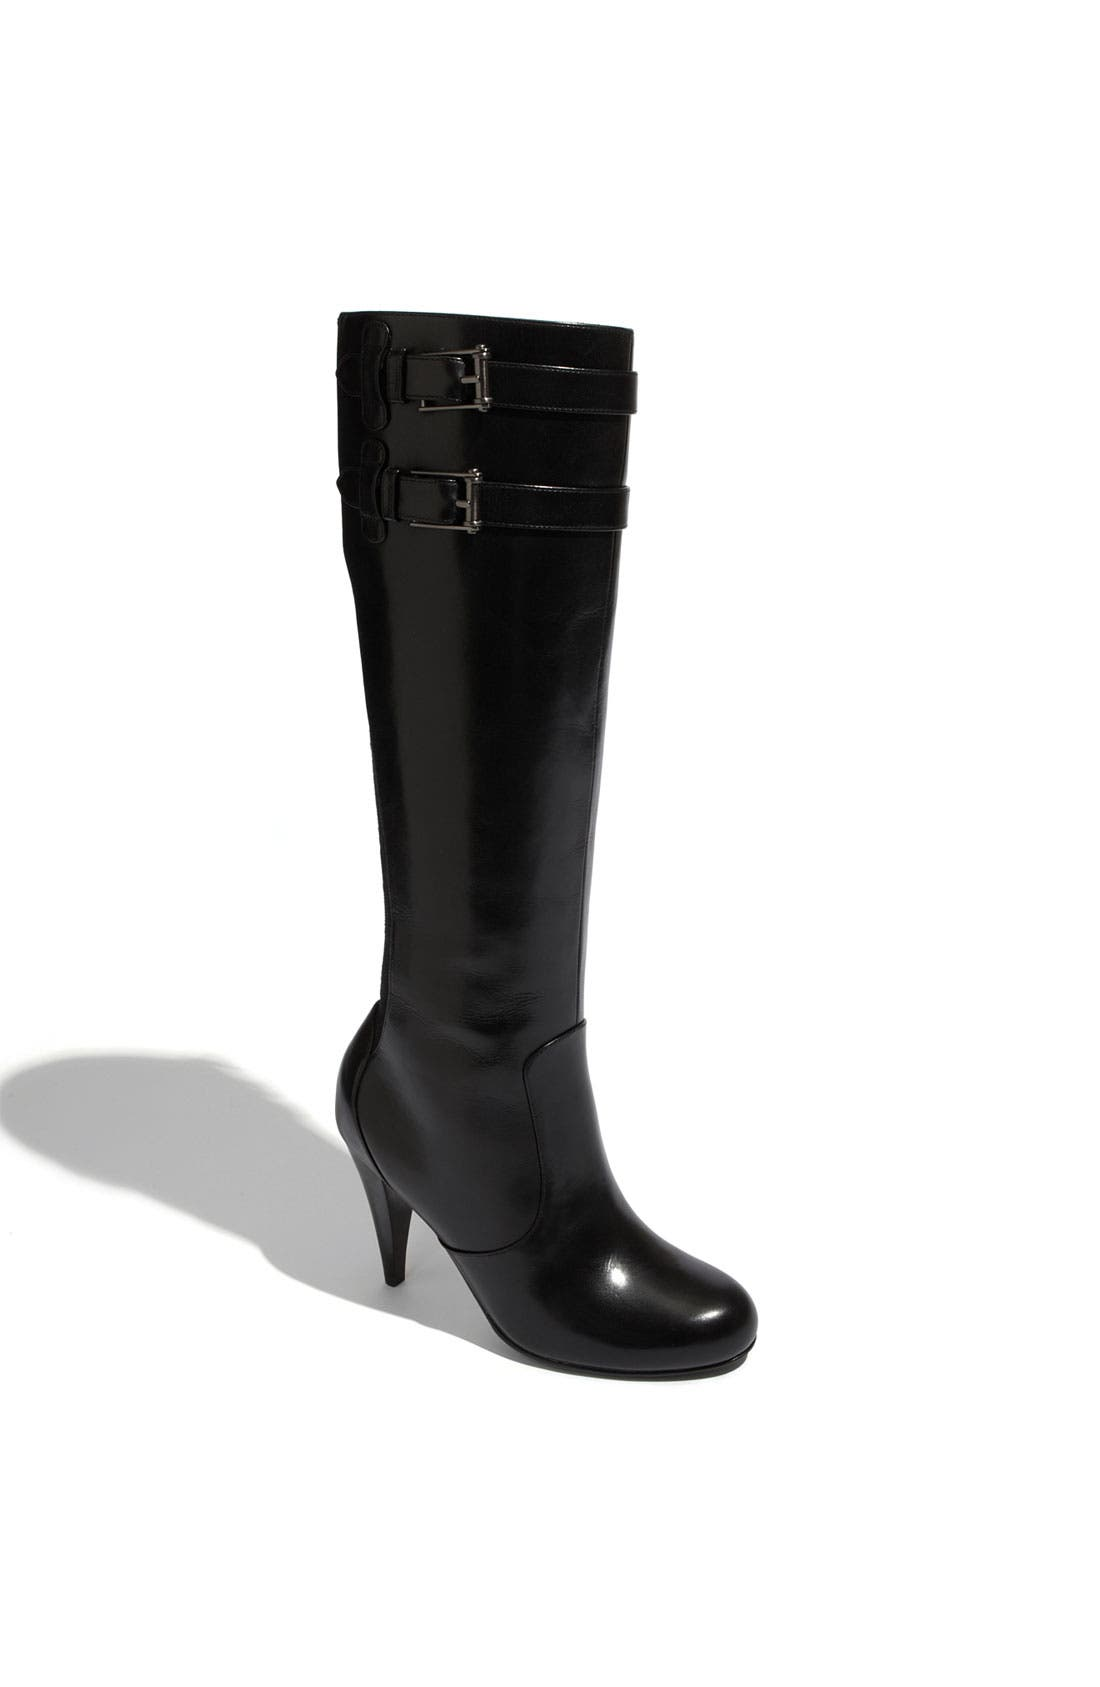 Main Image - Cole Haan 'Air Jalisa' Leather Tall Boot